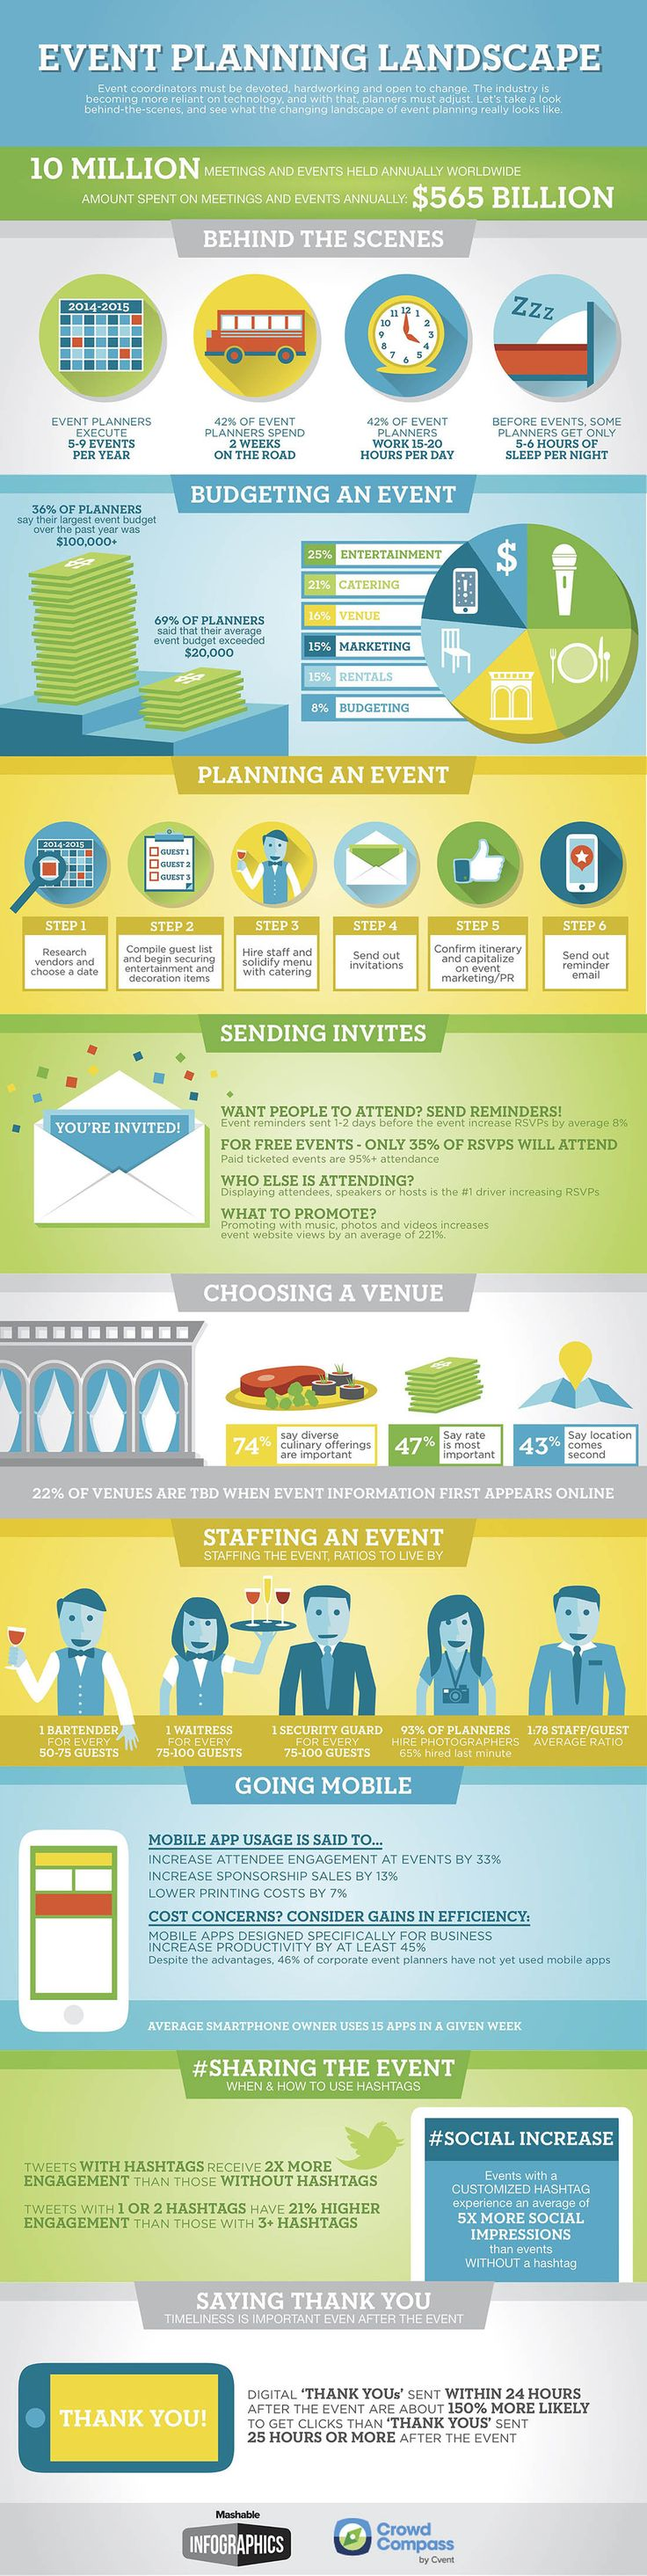 Event planning is no easy job! From staffing to budgeting and from hashtags to thank you notes, this #Mashable #infographic will help you do it all: http://vrl.ht/1B7C2